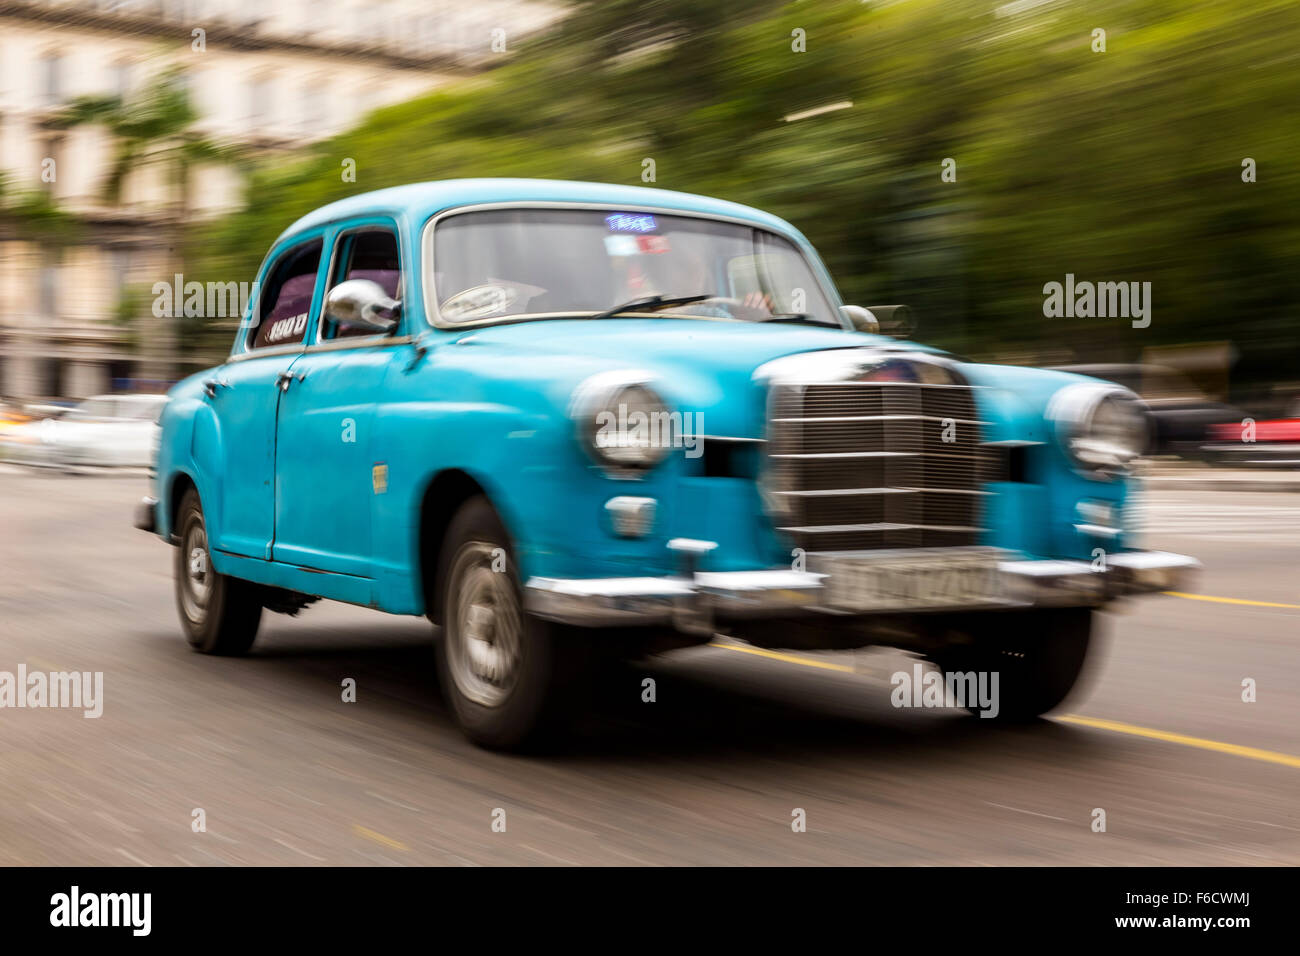 Speed, blurred, traveling old car, classic car blue Mercedes on the ...